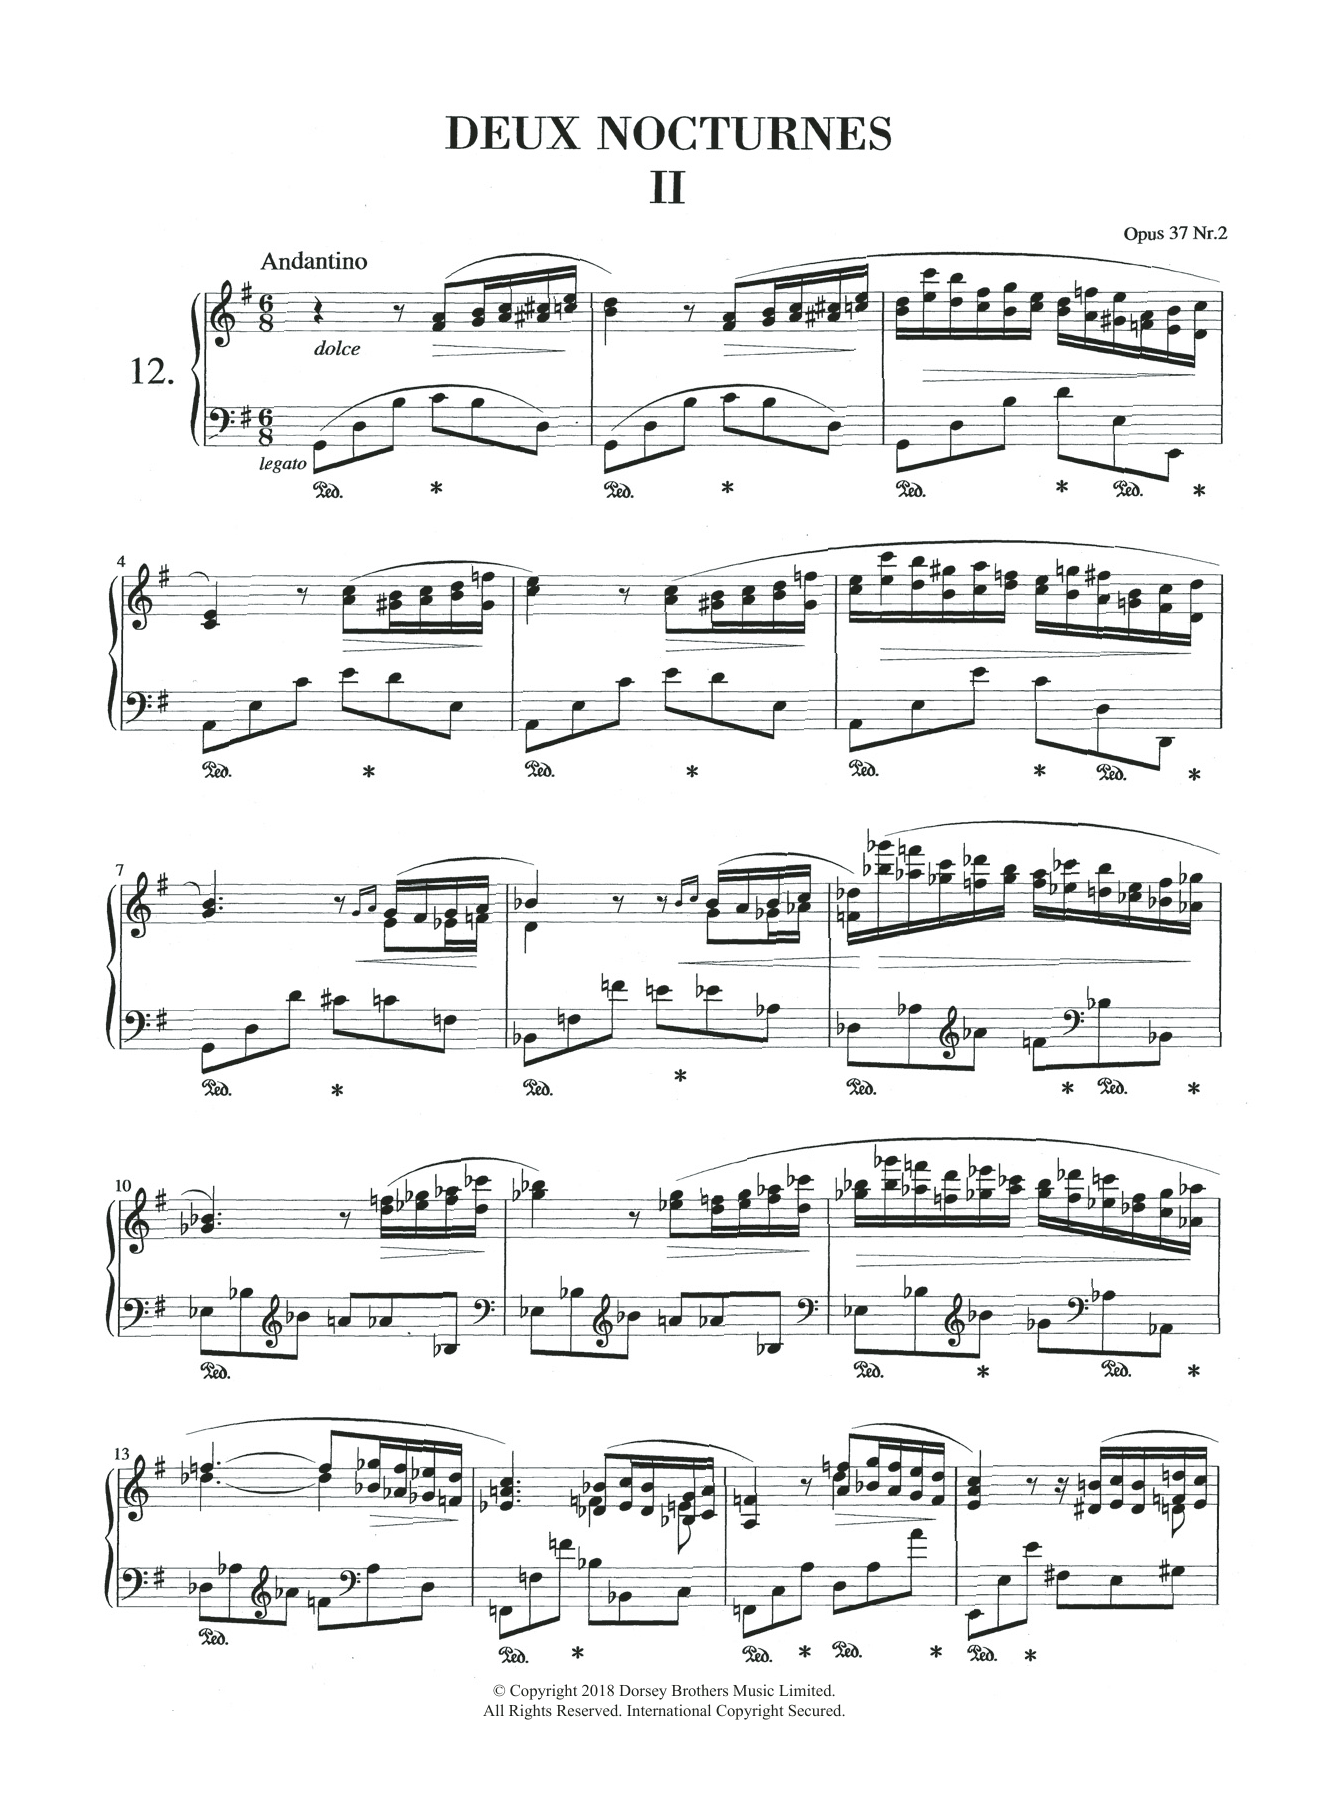 Nocturne in G Major, Op.37, No.2 Sheet Music